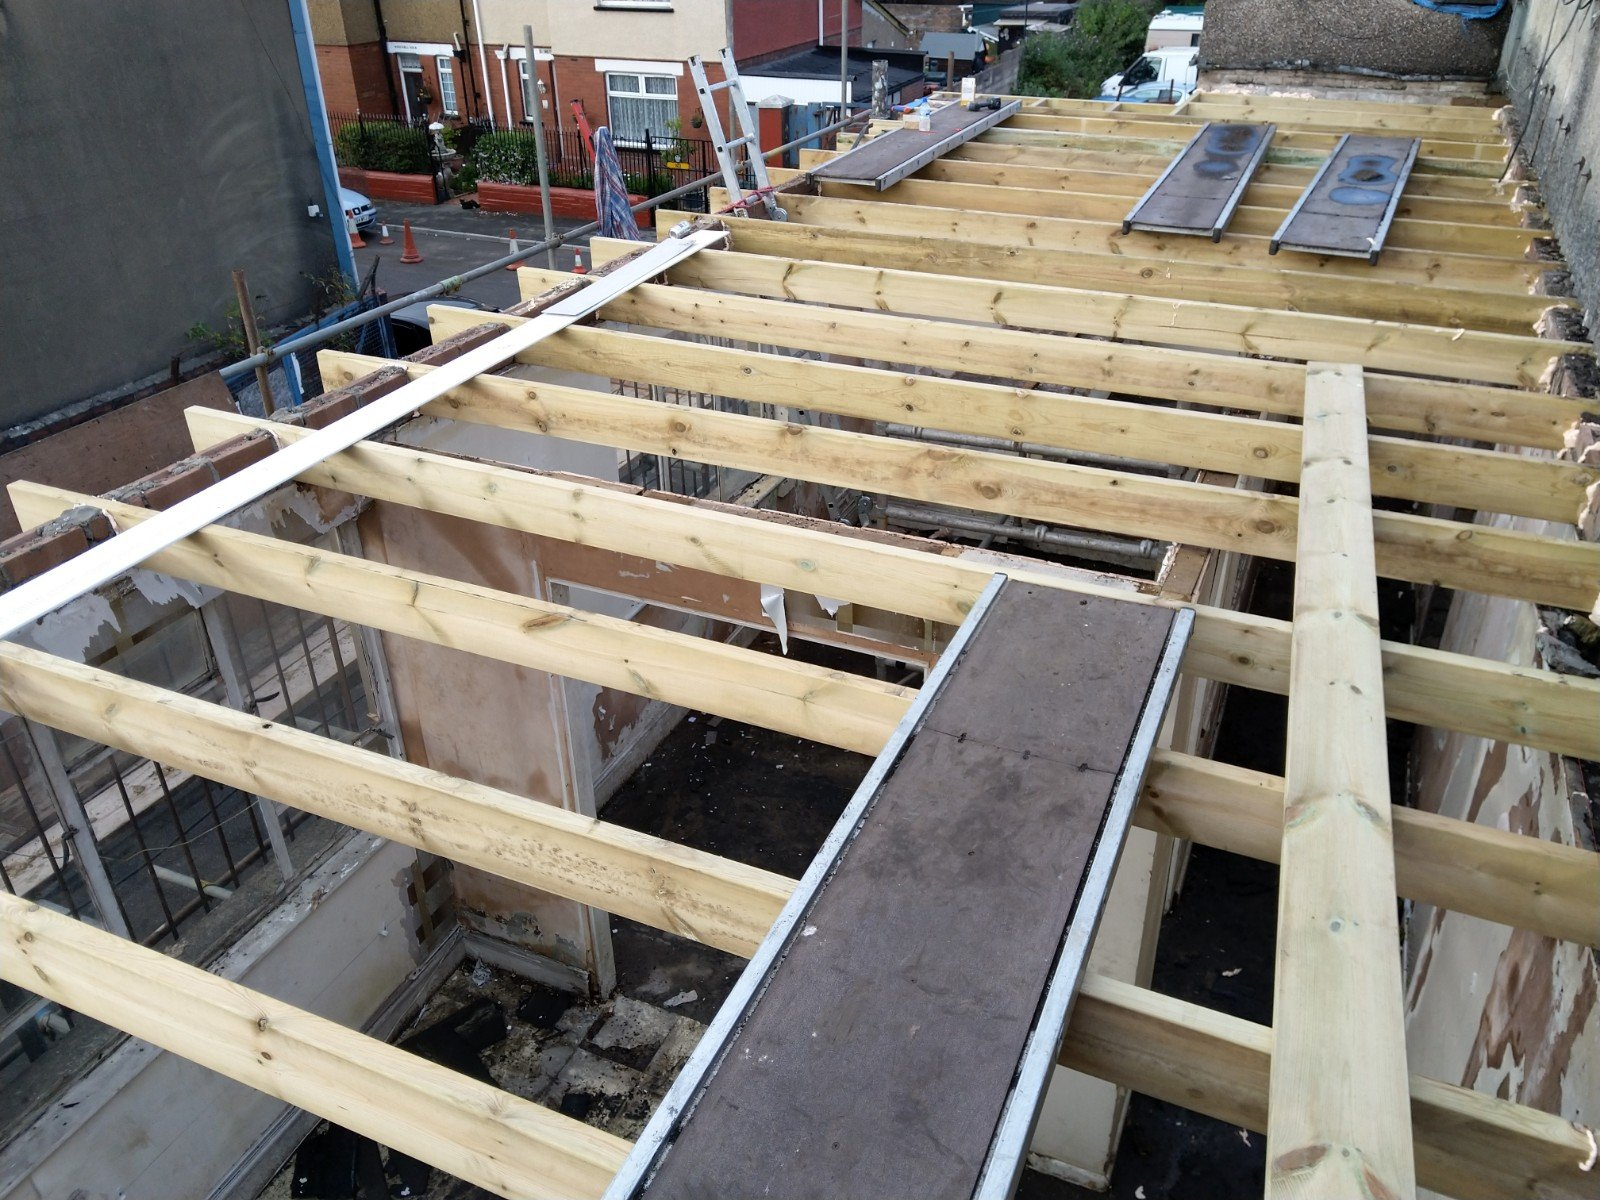 New joists fitted to old rotten flat roof.